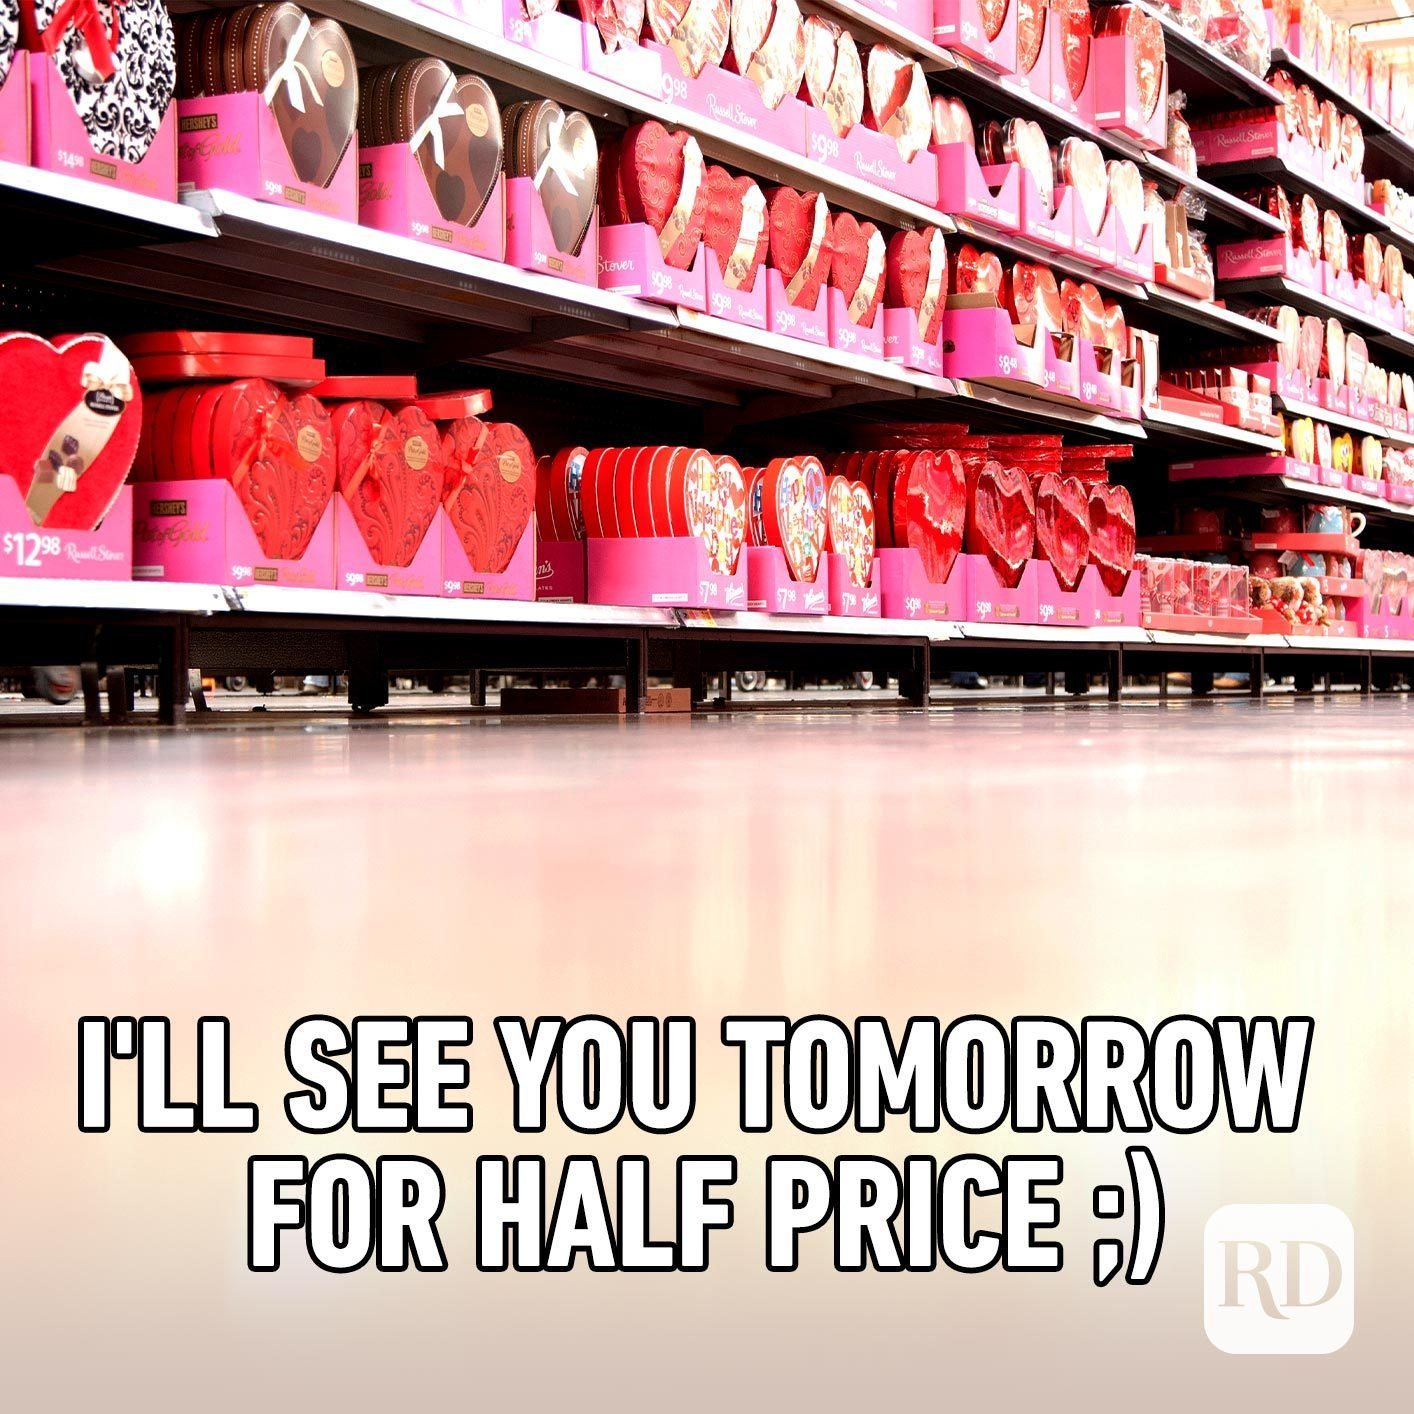 Grocery store aisle with candy. Meme text: I'll see you tomorrow for half price ;)